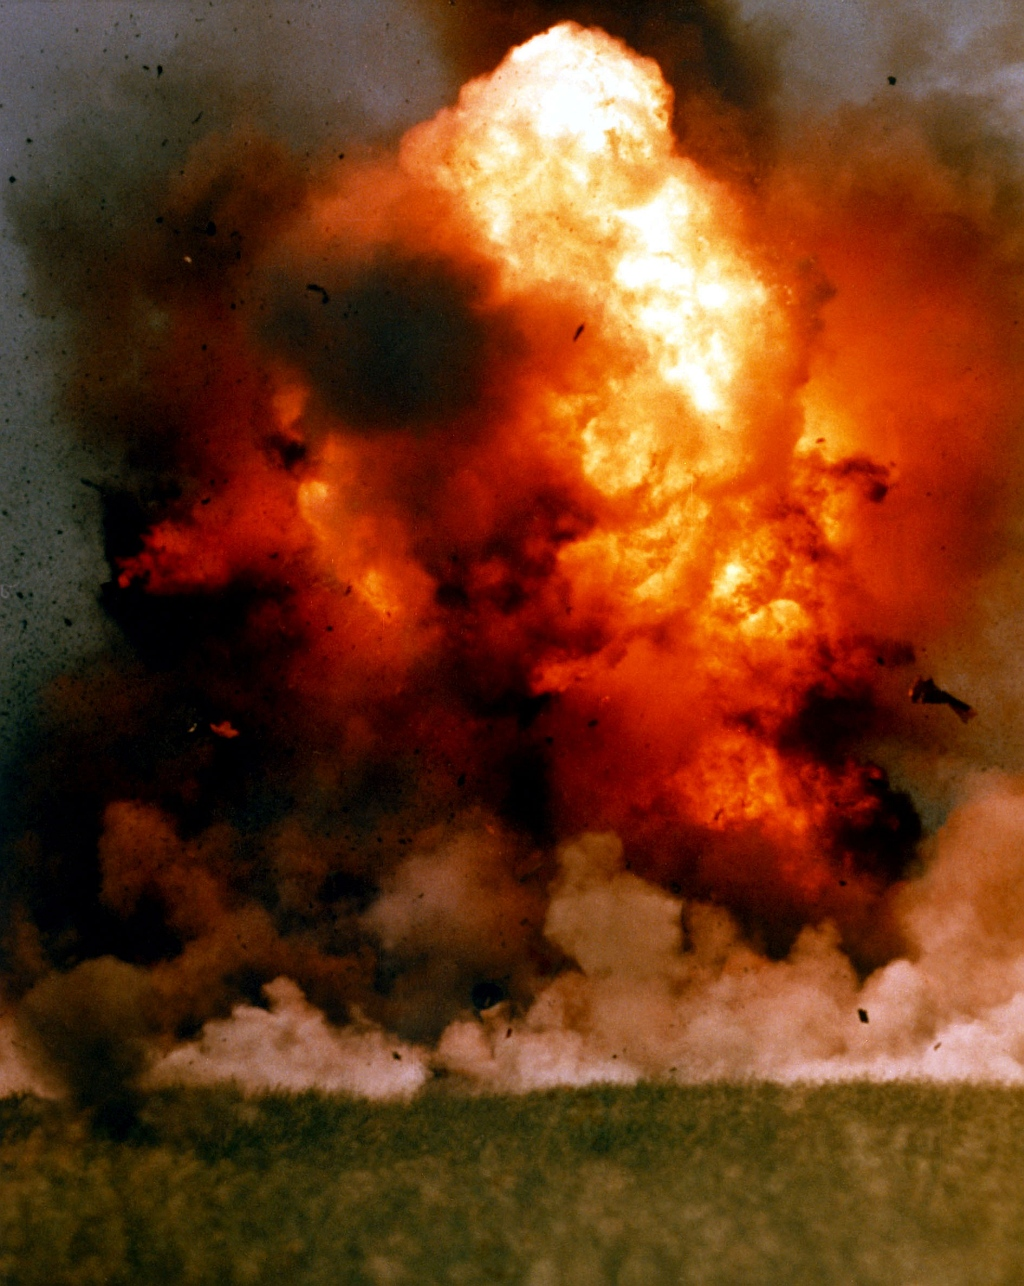 6c. The explosion destroys the target, the revetted aircraft, April 1, 1986, San Clemente Island, State of California, USA. Photo Credit: Defense Visual Information Center (DVIC, http://www.DoDMedia.osd.mil, DN-SC-86-06114) and United States Navy (USN, http://www.navy.mil), United States Department of Defense (DoD, http://www.DefenseLink.mil or http://www.dod.gov), Government of the United States of America (USA).